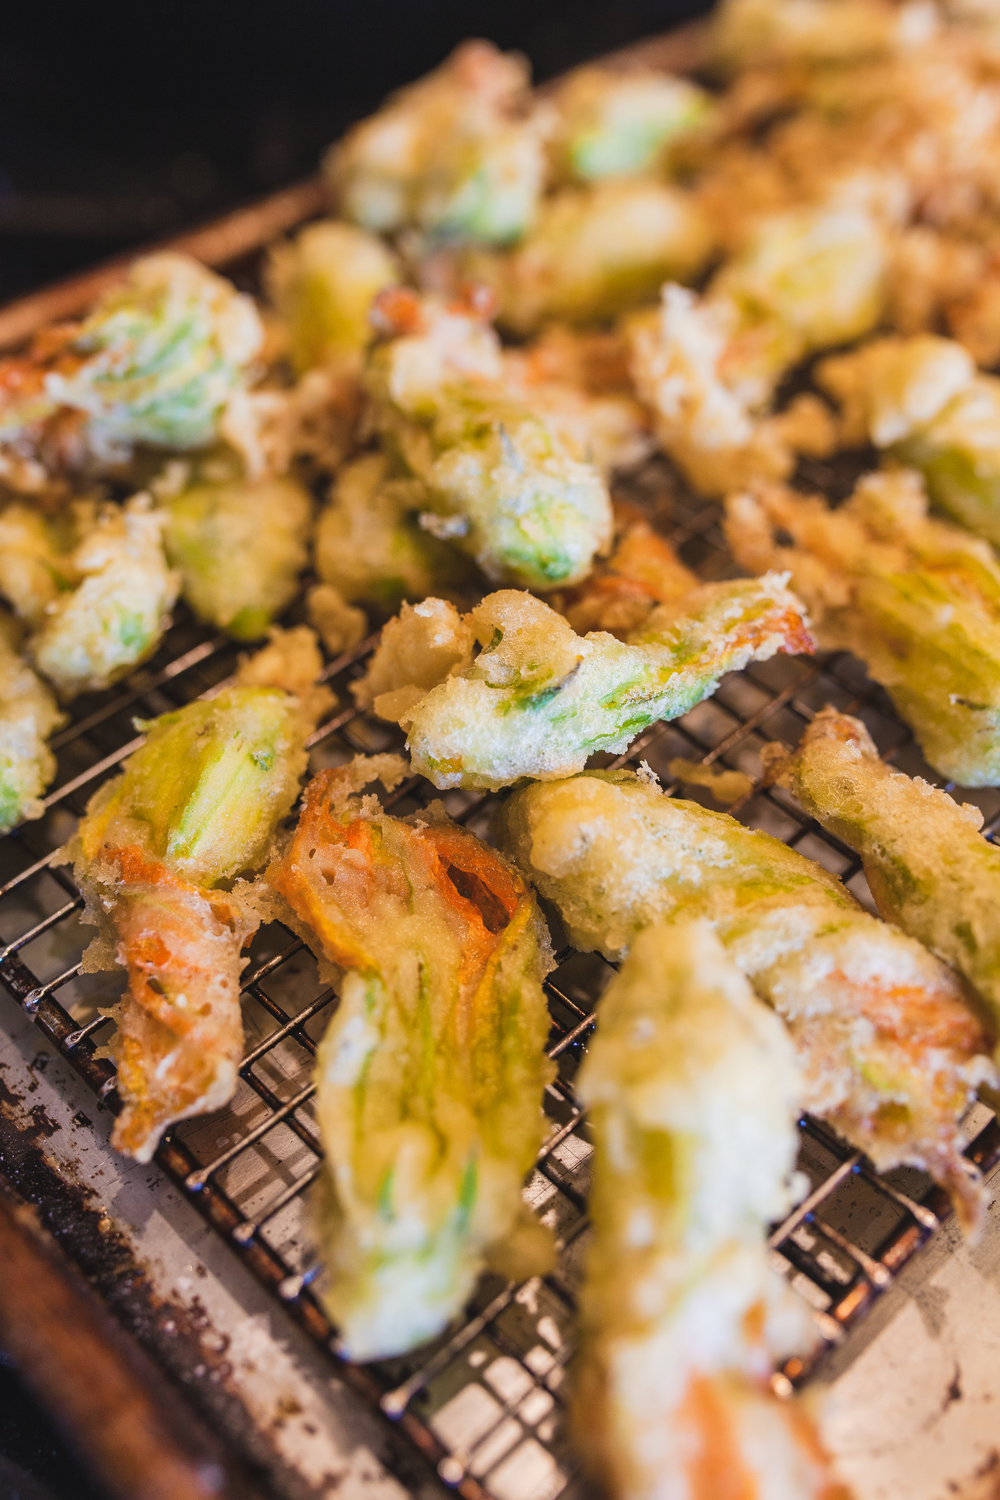 Zucchini blossom tempura photo by Oriana Koren